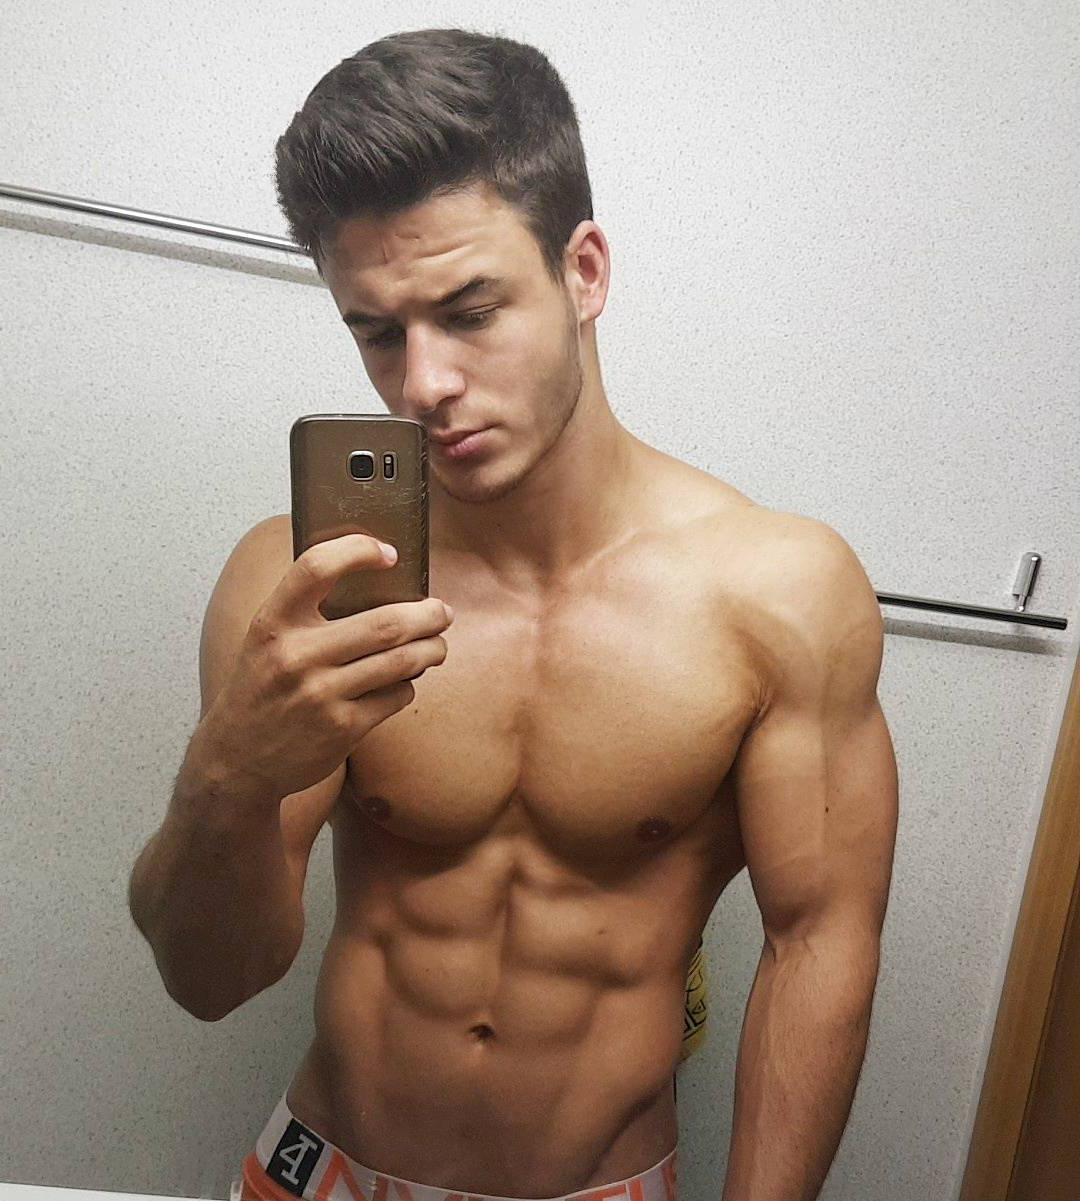 ripped-shirtless-hunk-young-slim-bad-boy-sixpack-abs-pecs-dude-selfie